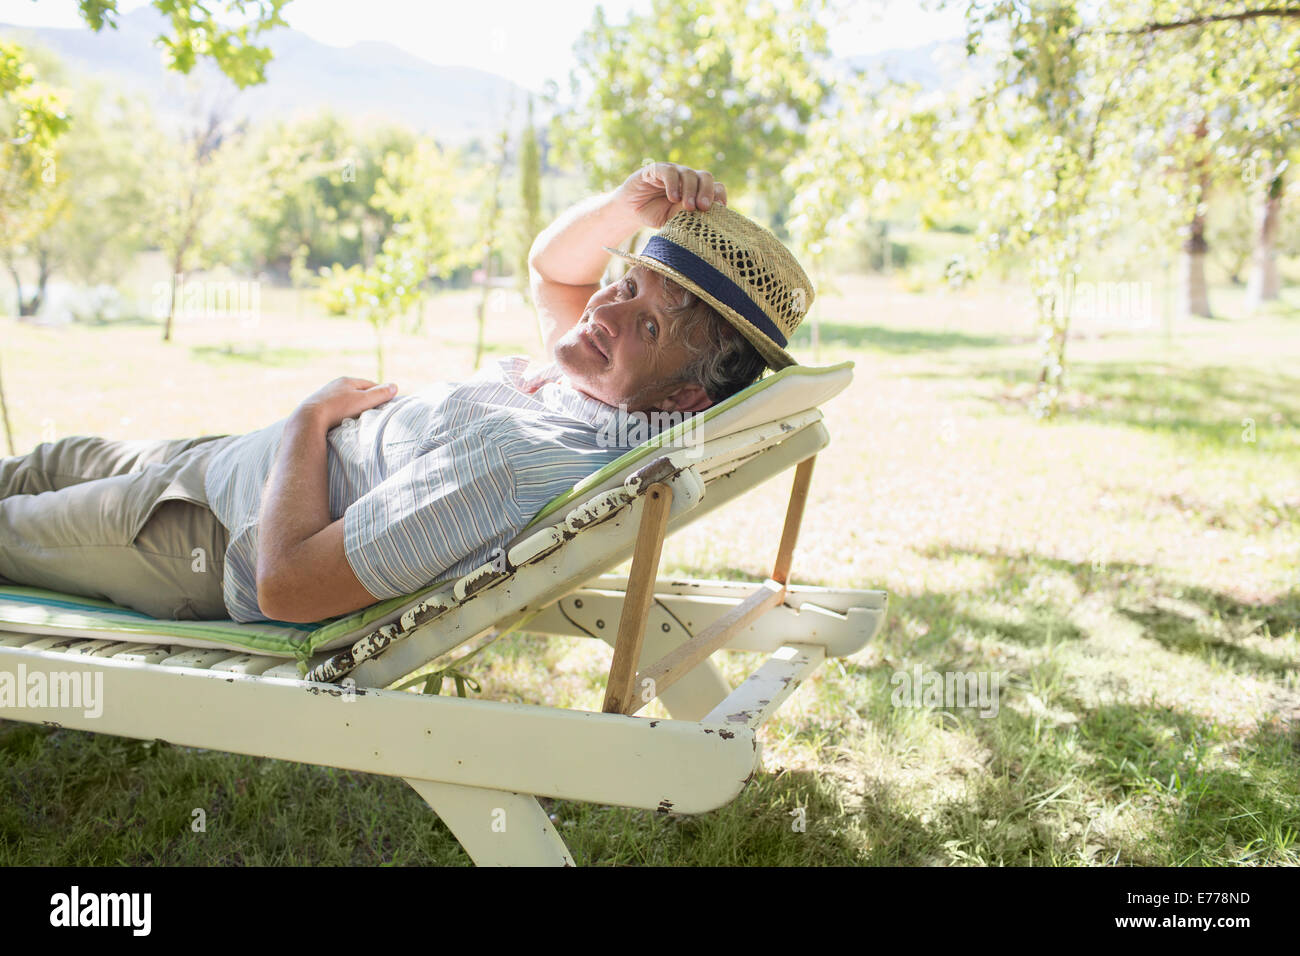 Older man relaxing on lawn chair outdoorsStock Photo